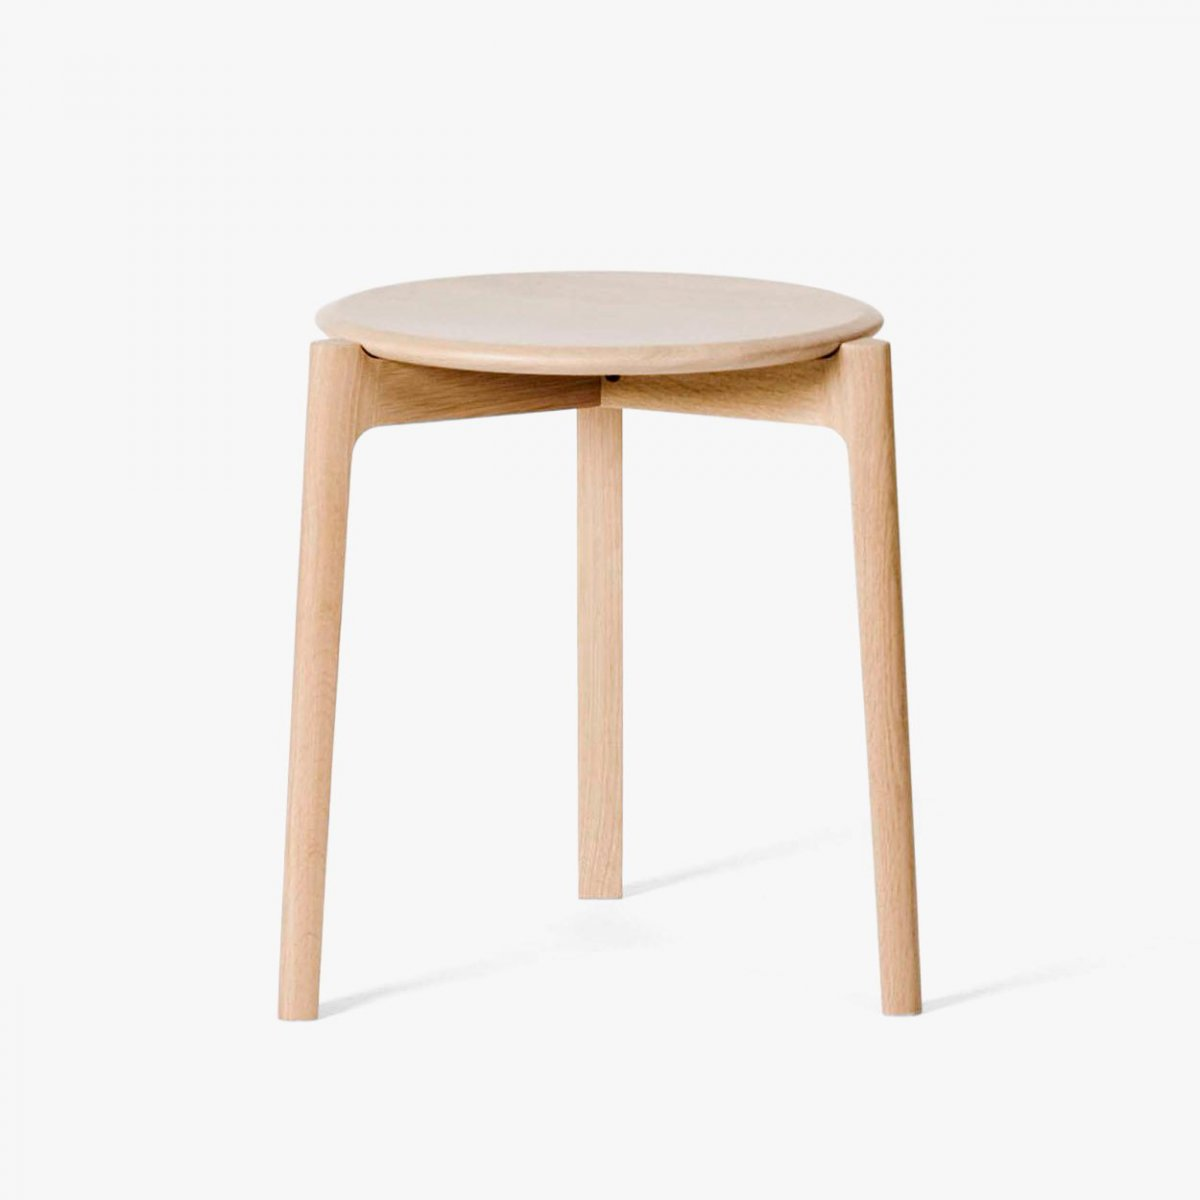 Svelto Round Stacking Stool.